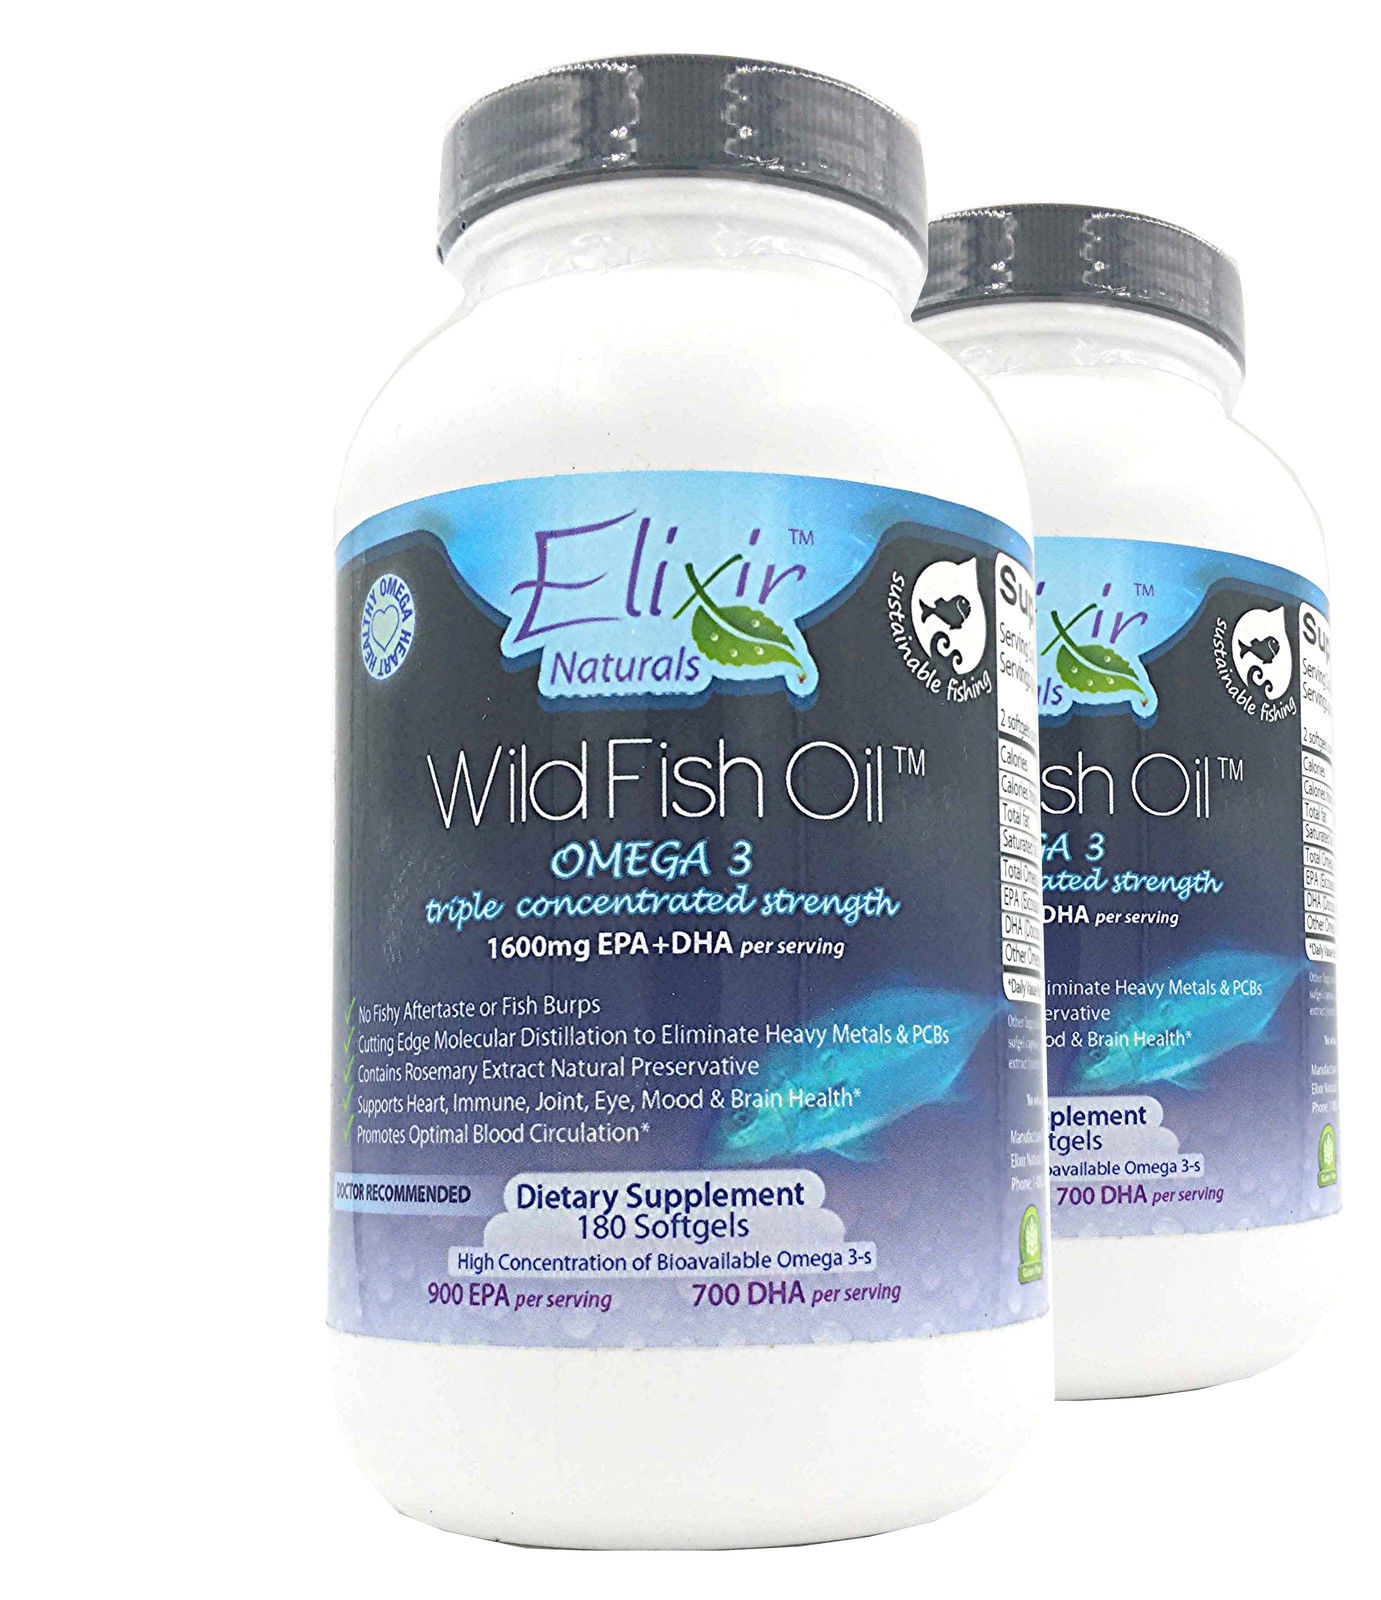 Omega 3 Wild Fish Oil Gelcaps 90 Day Supply 2 Pack!! by Elixir Naturals